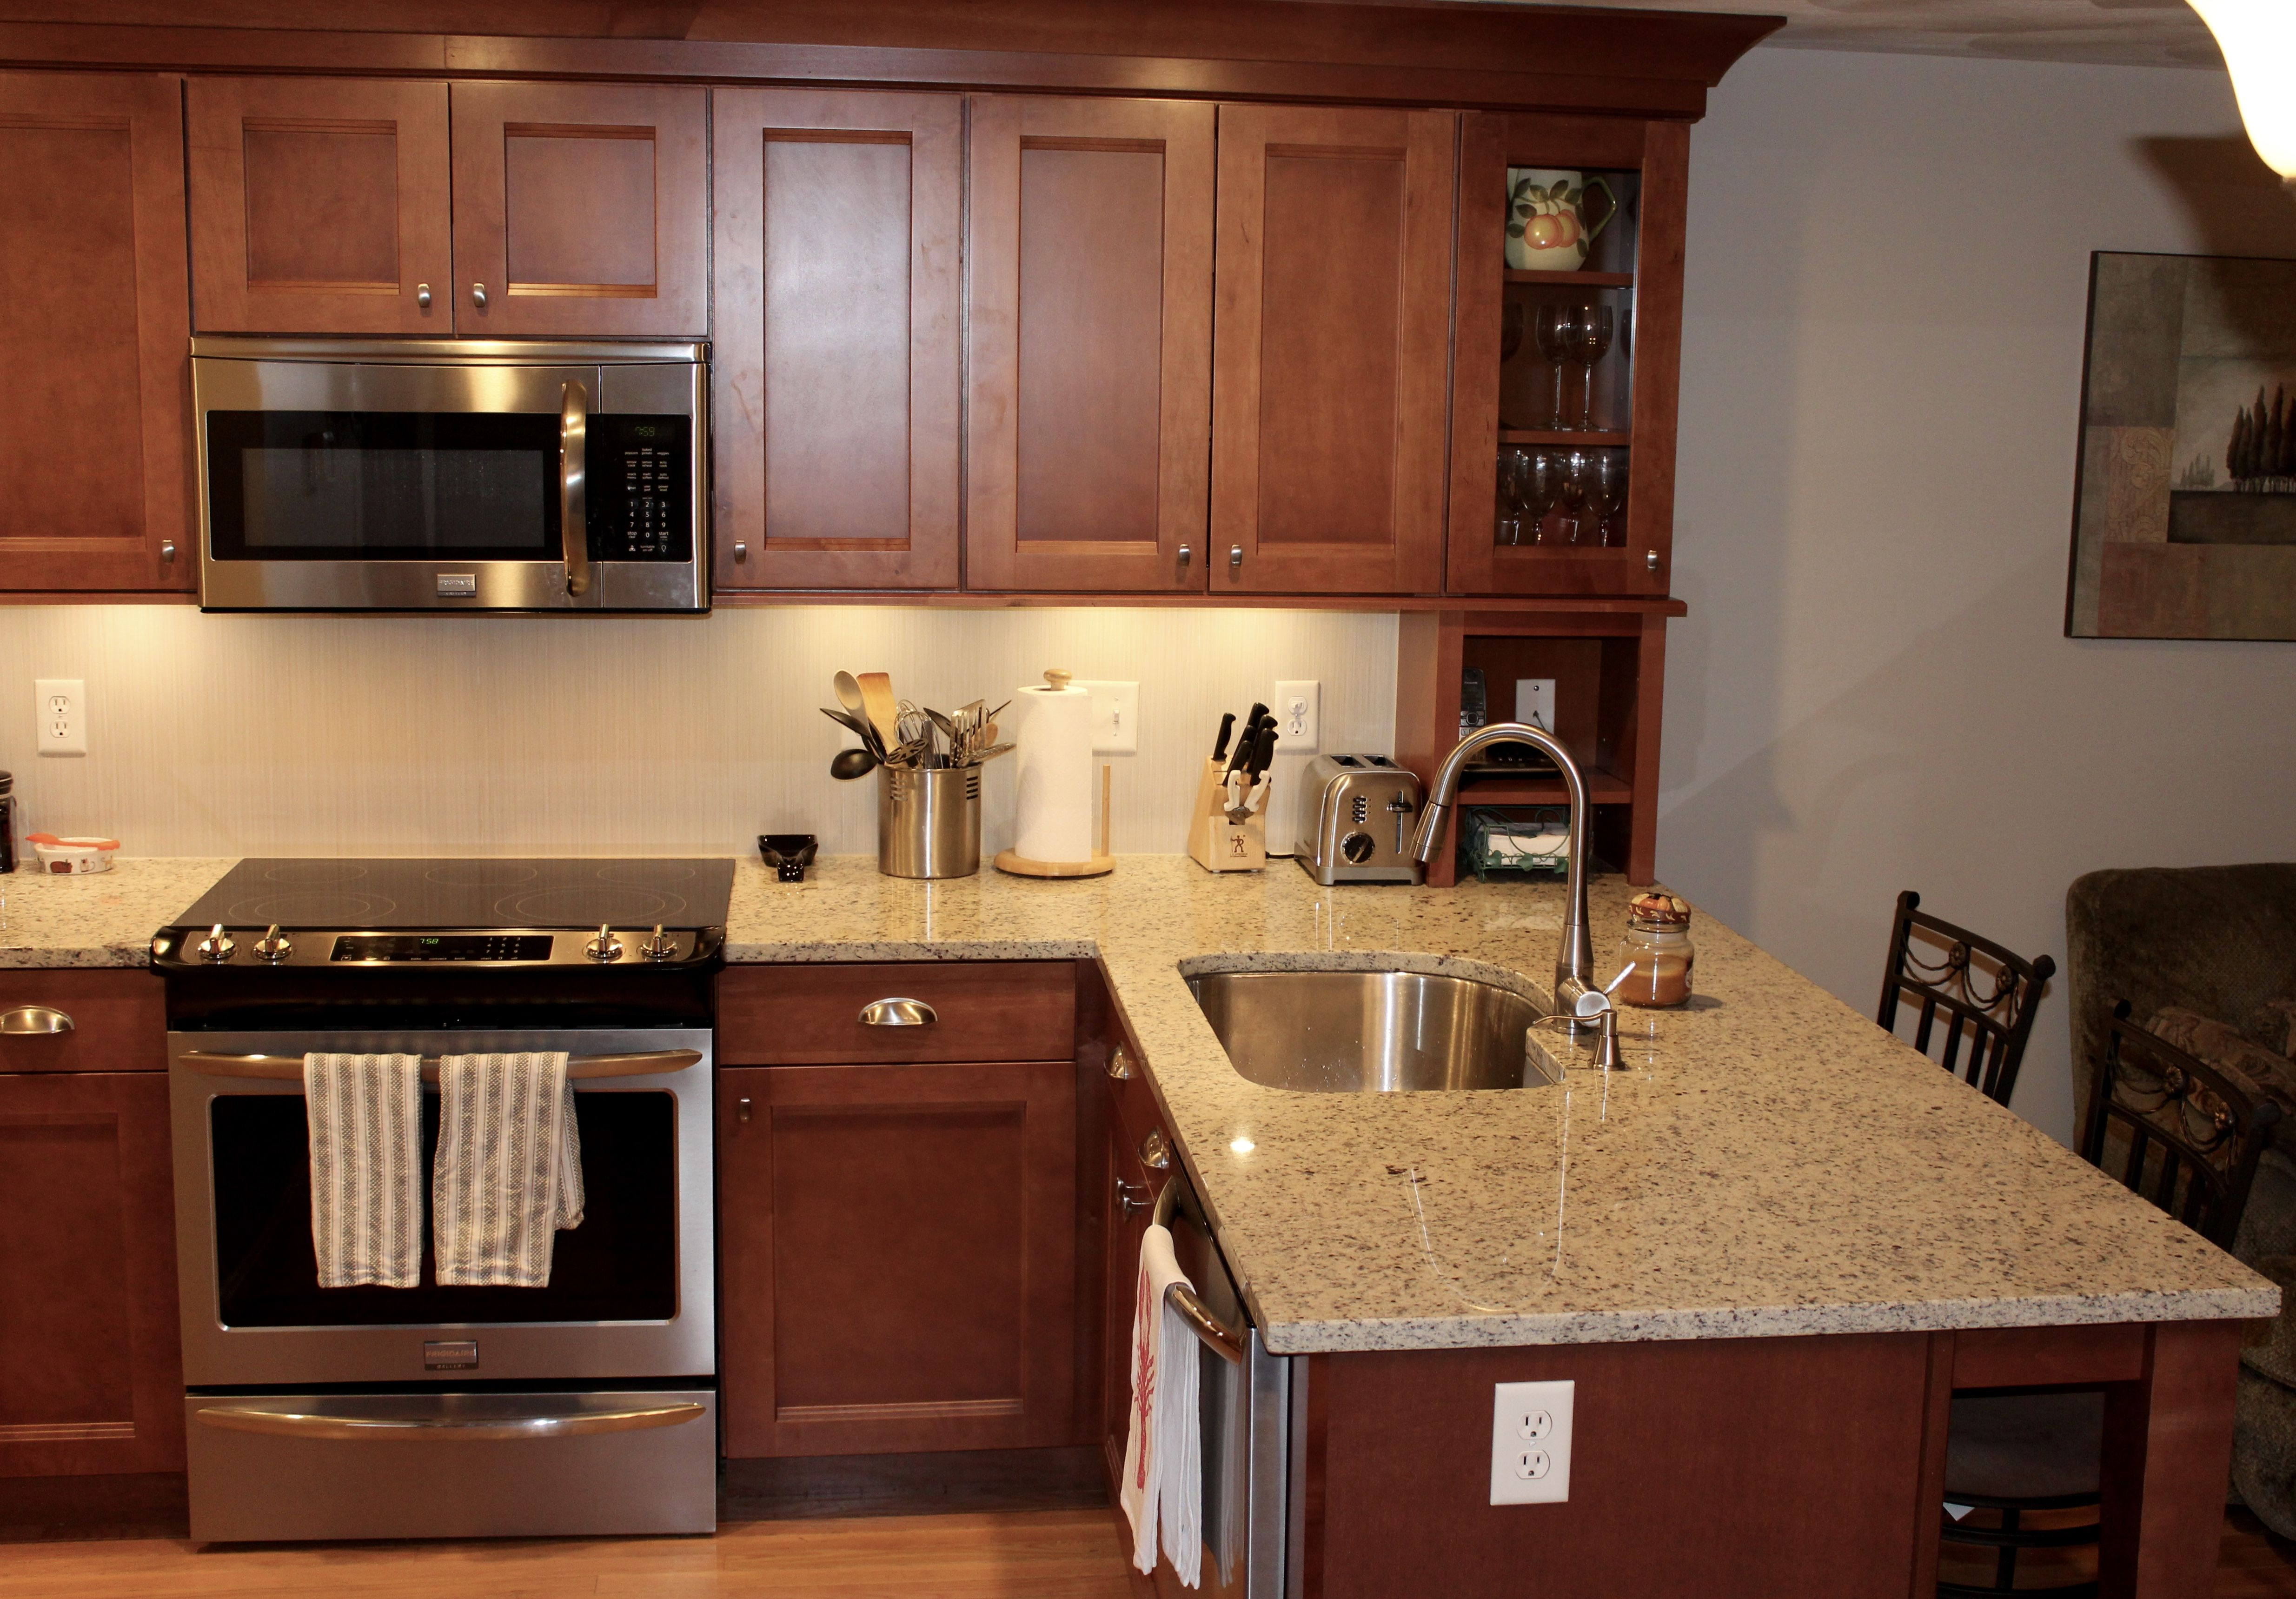 Shaker Kitchen Cabinets in maple cognac ,Glass kitchen ... on What Color Backsplash With Maple Cabinets  id=59500